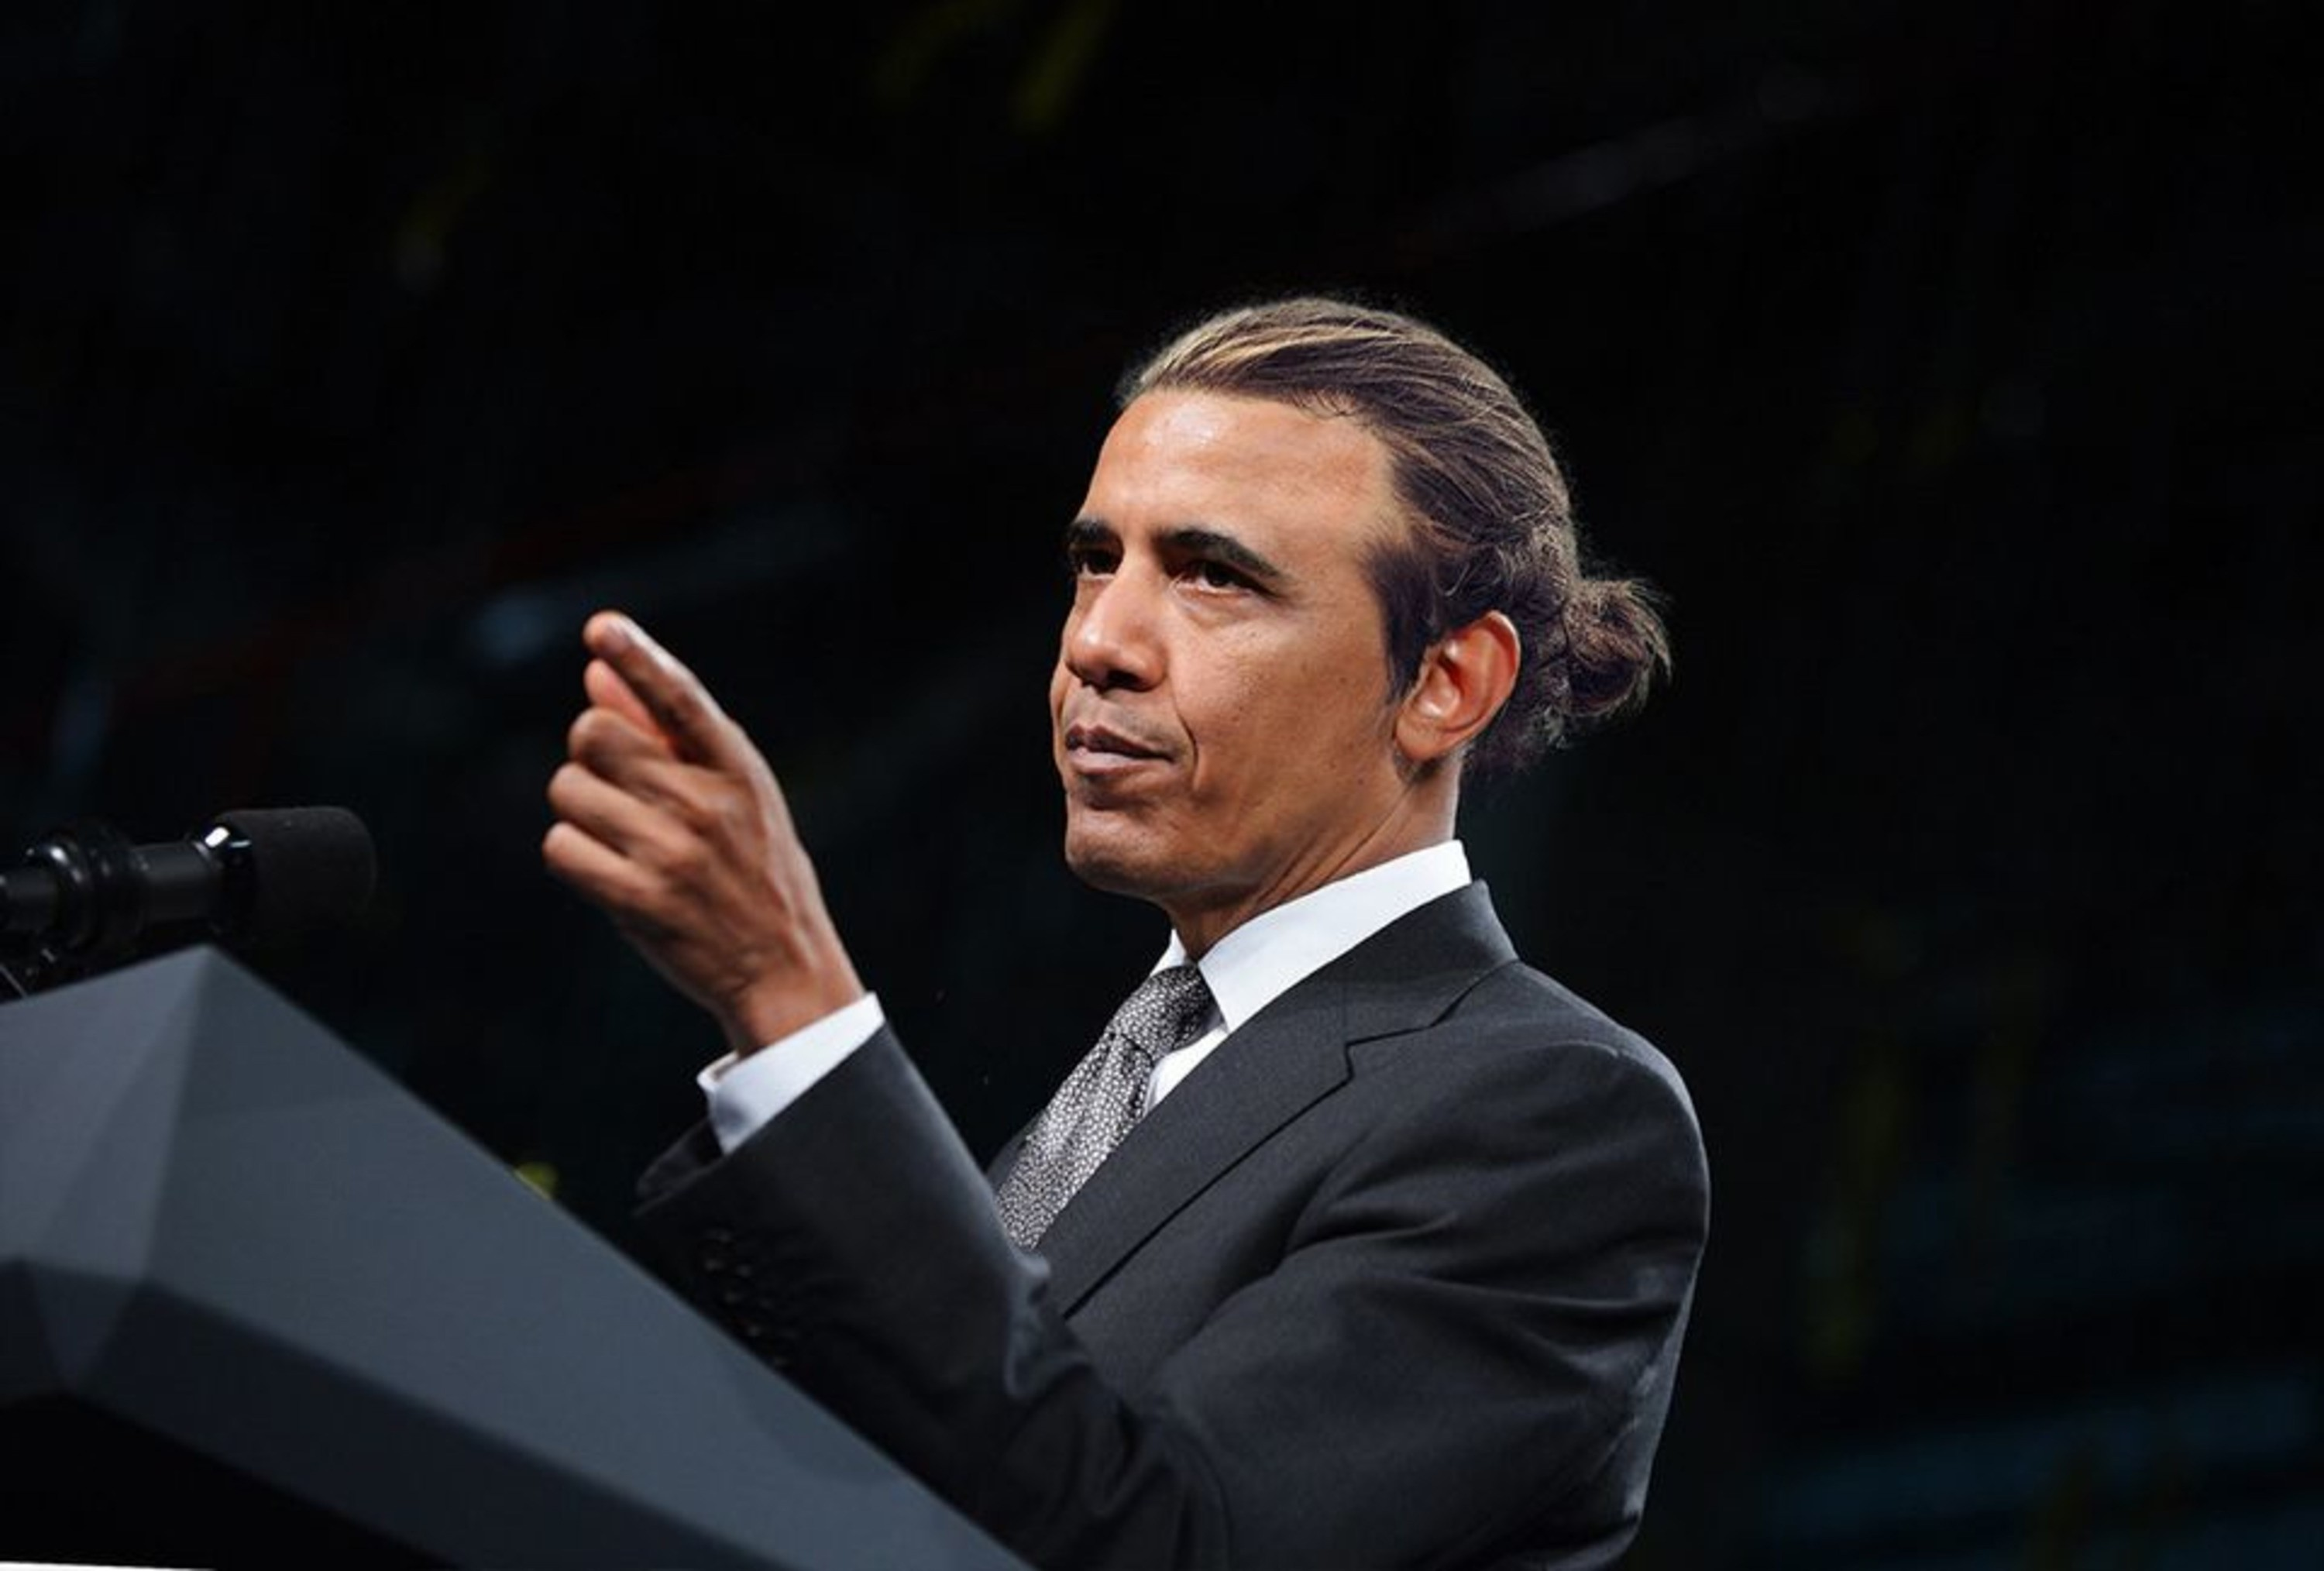 Barack Obama with a casual bun style.